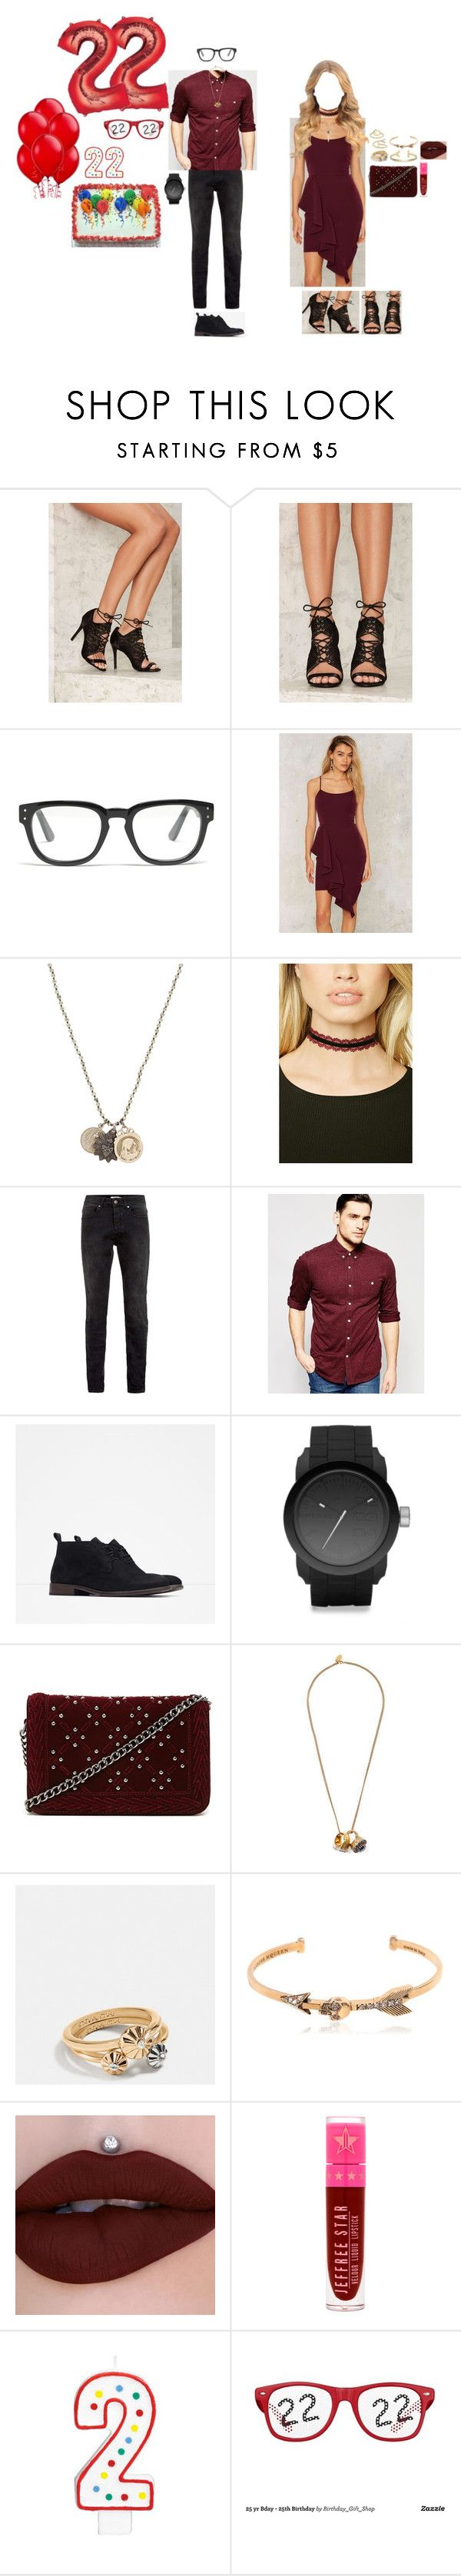 """""""22nd BIRTHDAY!! - 12.18.16"""" by gfc-account ❤ liked on Polyvore featuring Privileged, Madewell, Miracle Icons, Forever 21, Topman, ASOS, Zara, Diesel, Alexander McQueen and Coach"""